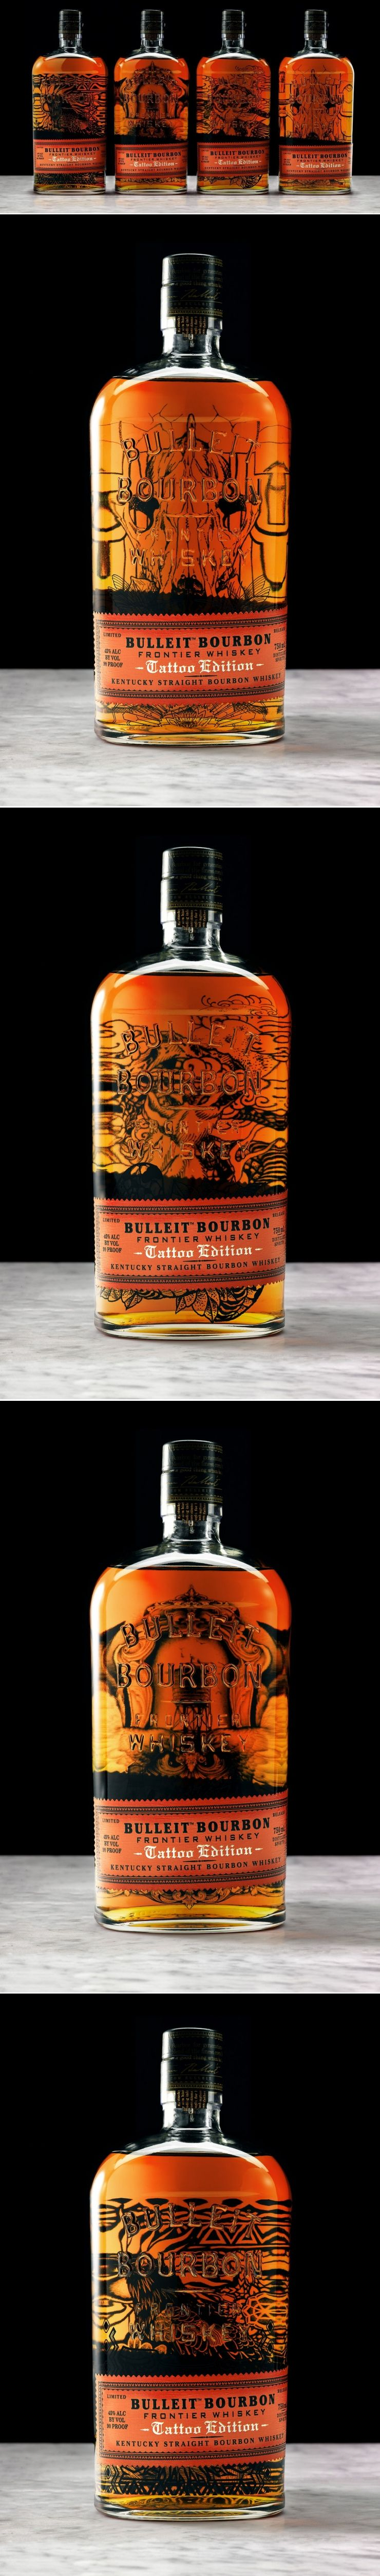 Bulleit Frontier Whiskey Launches Limited Tattoo Edition Product Launch Whiskey Liquor